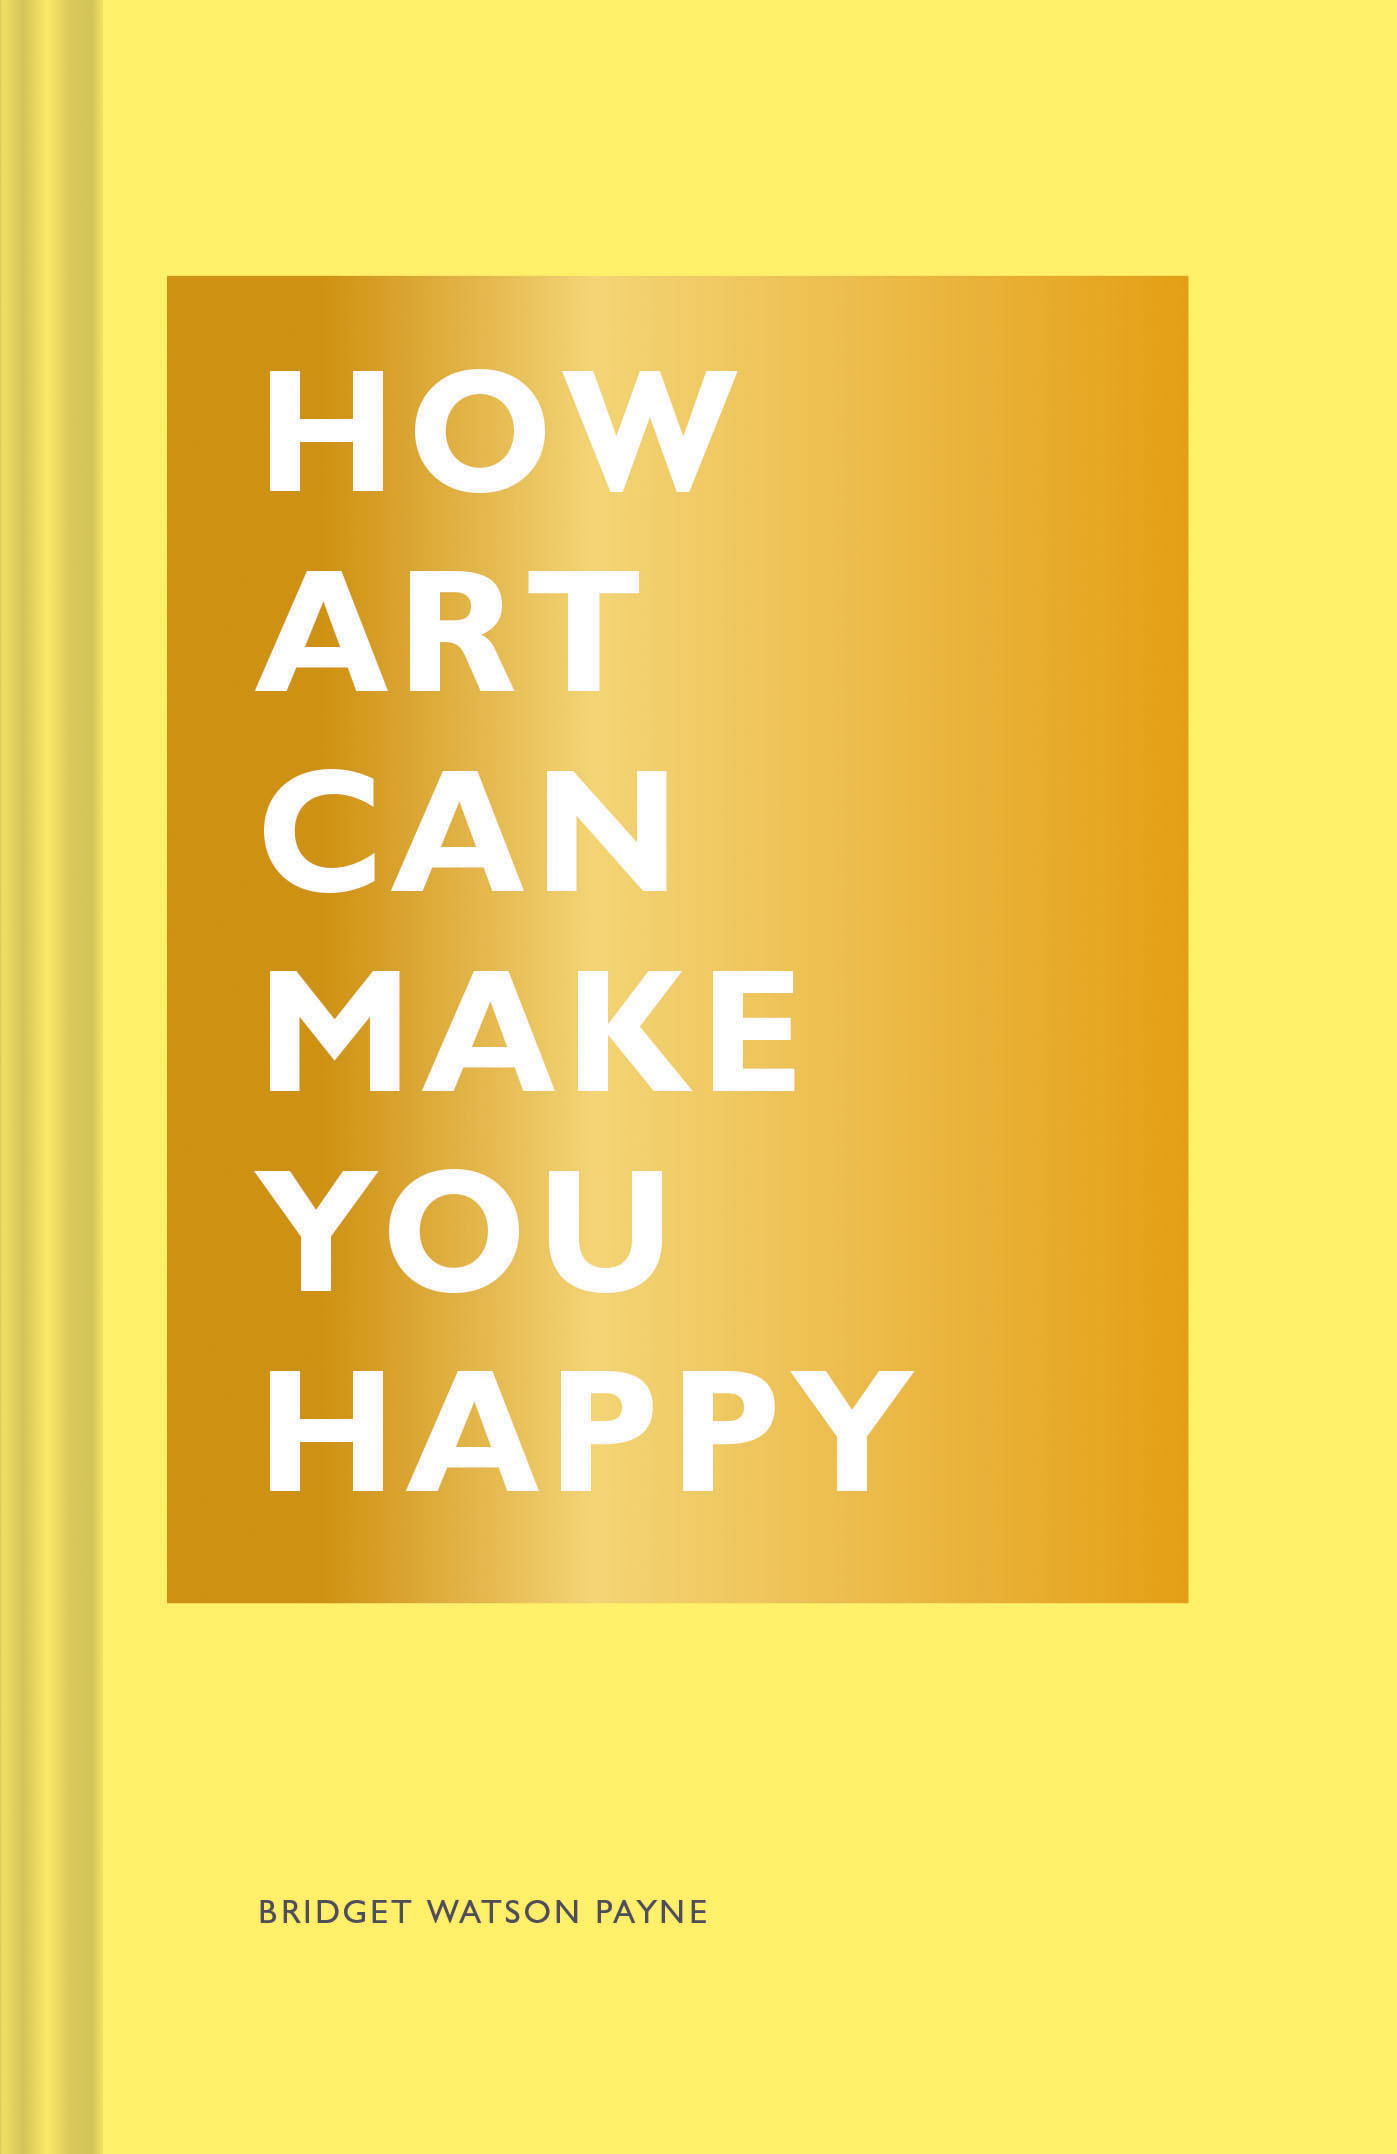 how-art-can-make-you-happy_flat-cover